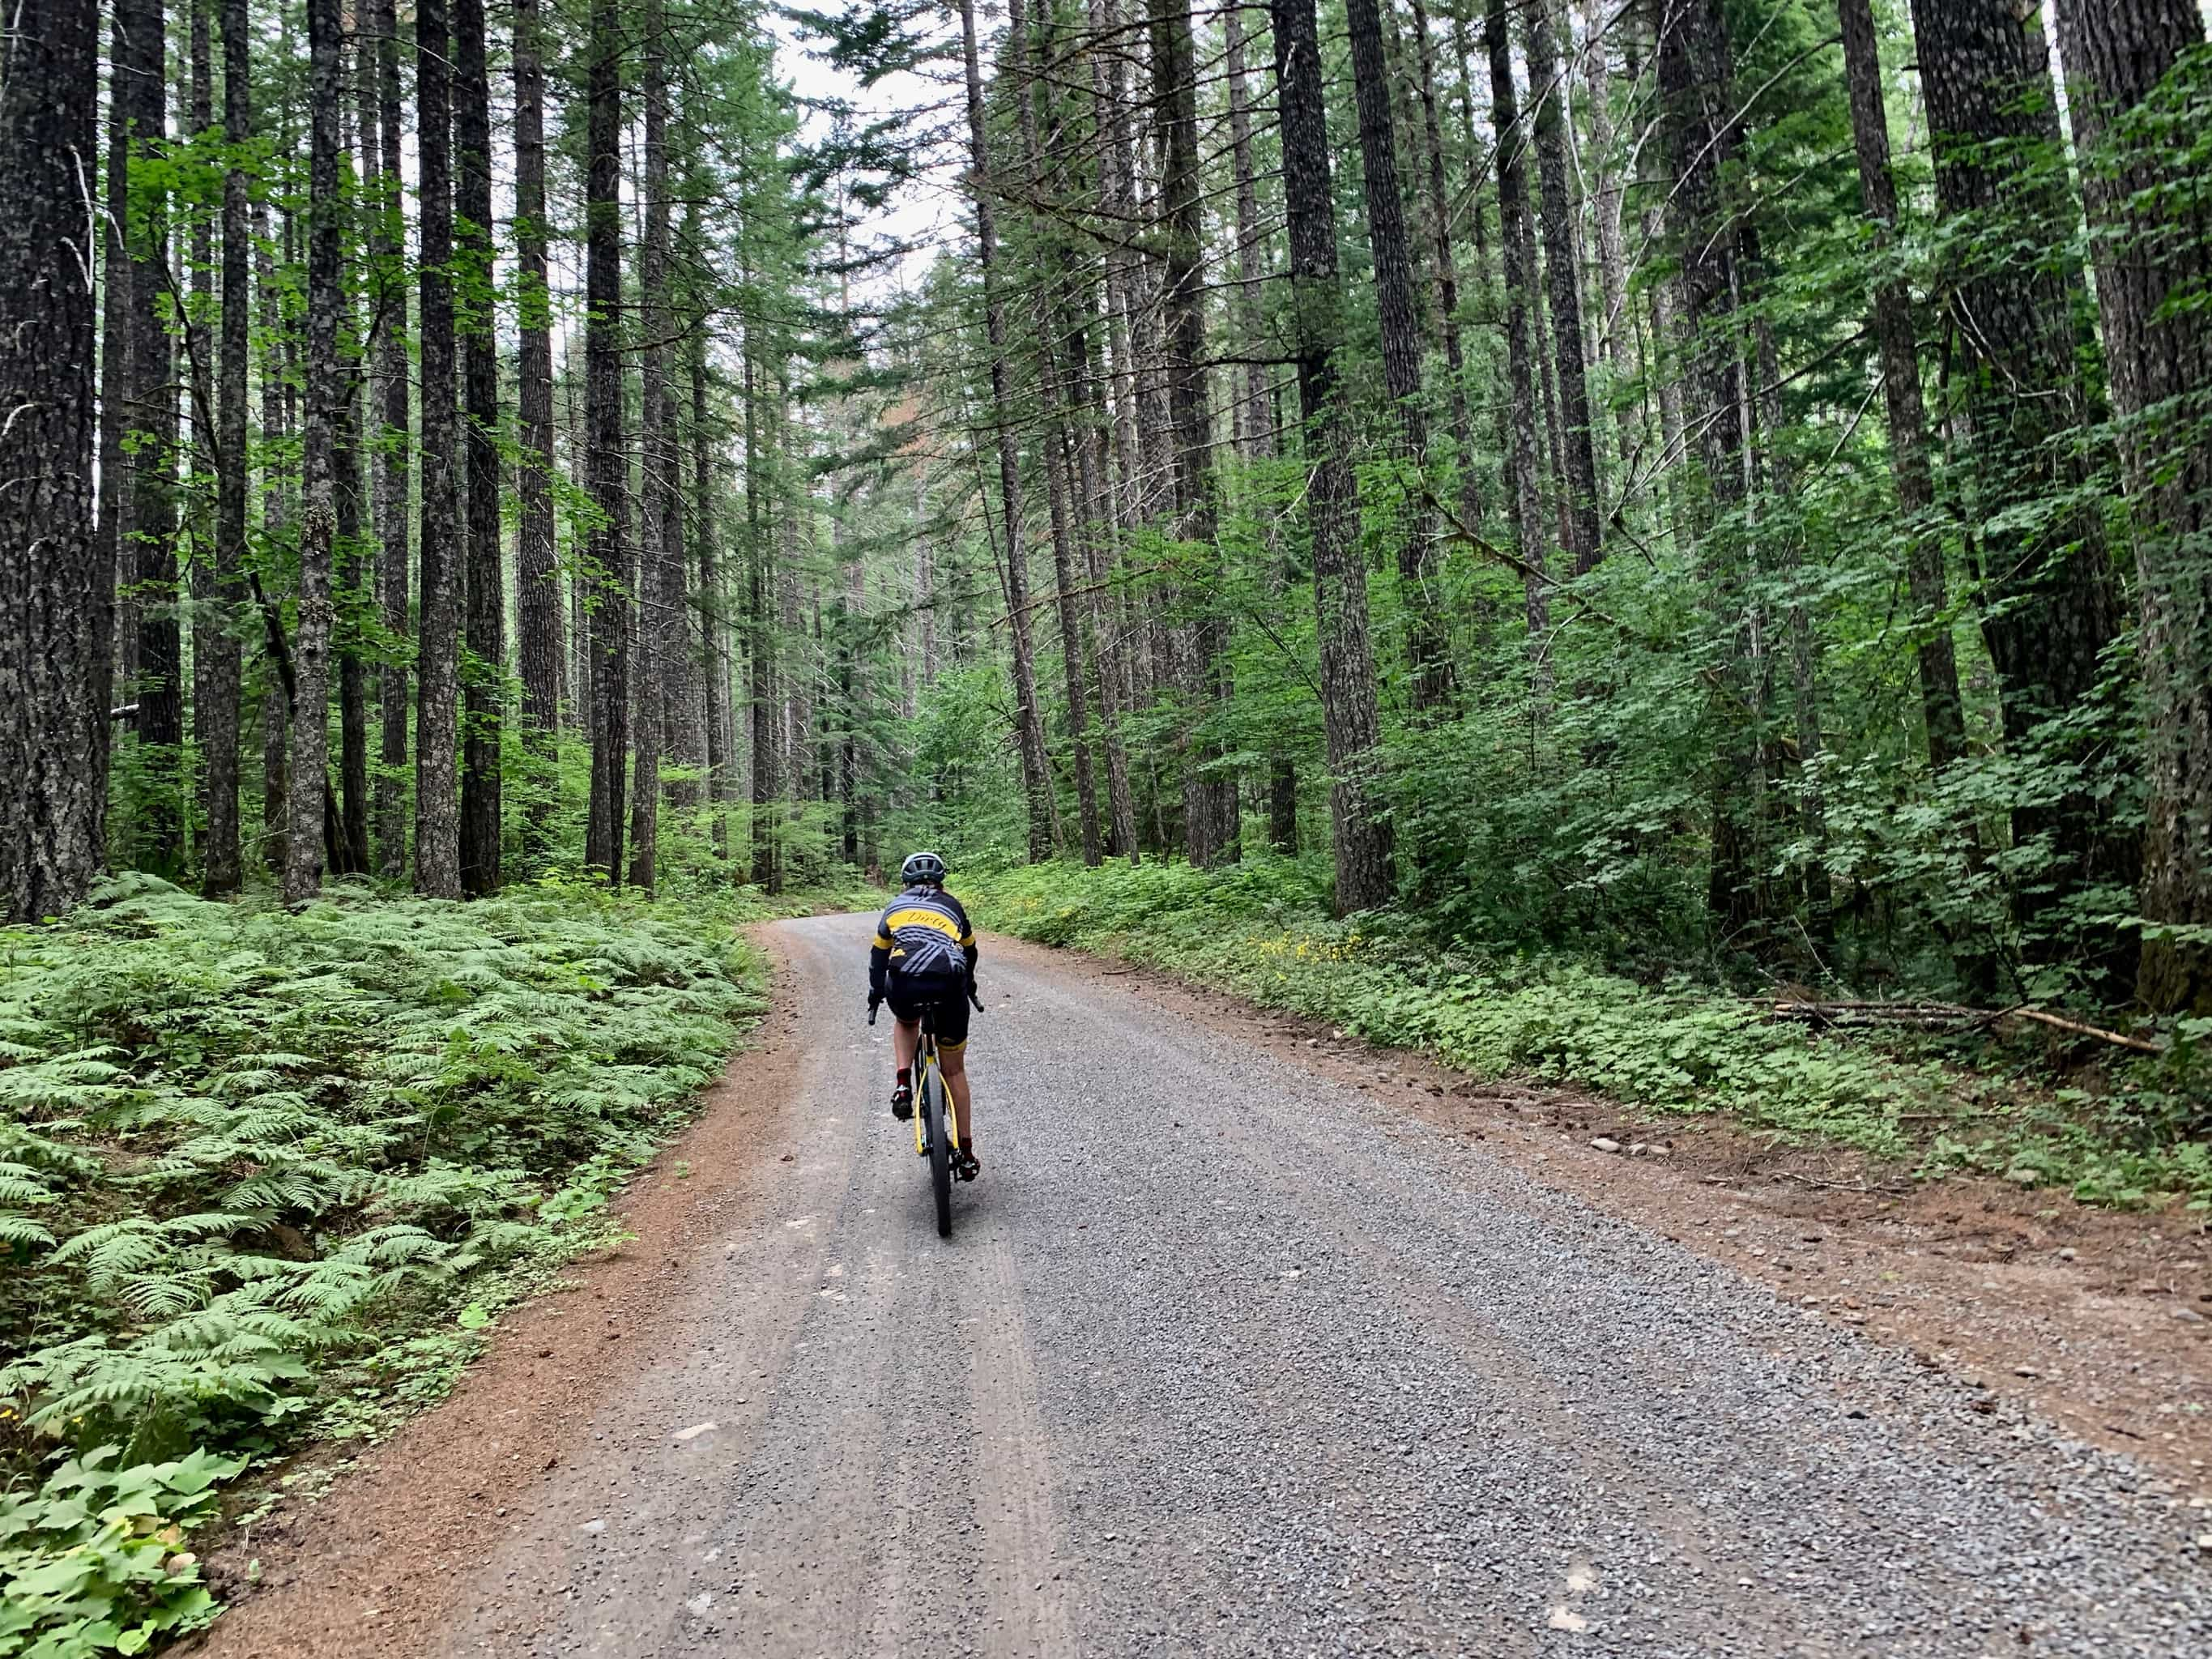 Cyclist on gravel road near Panther Creek in Gifford Pinchot national forest in the Columbia River Gorge area.